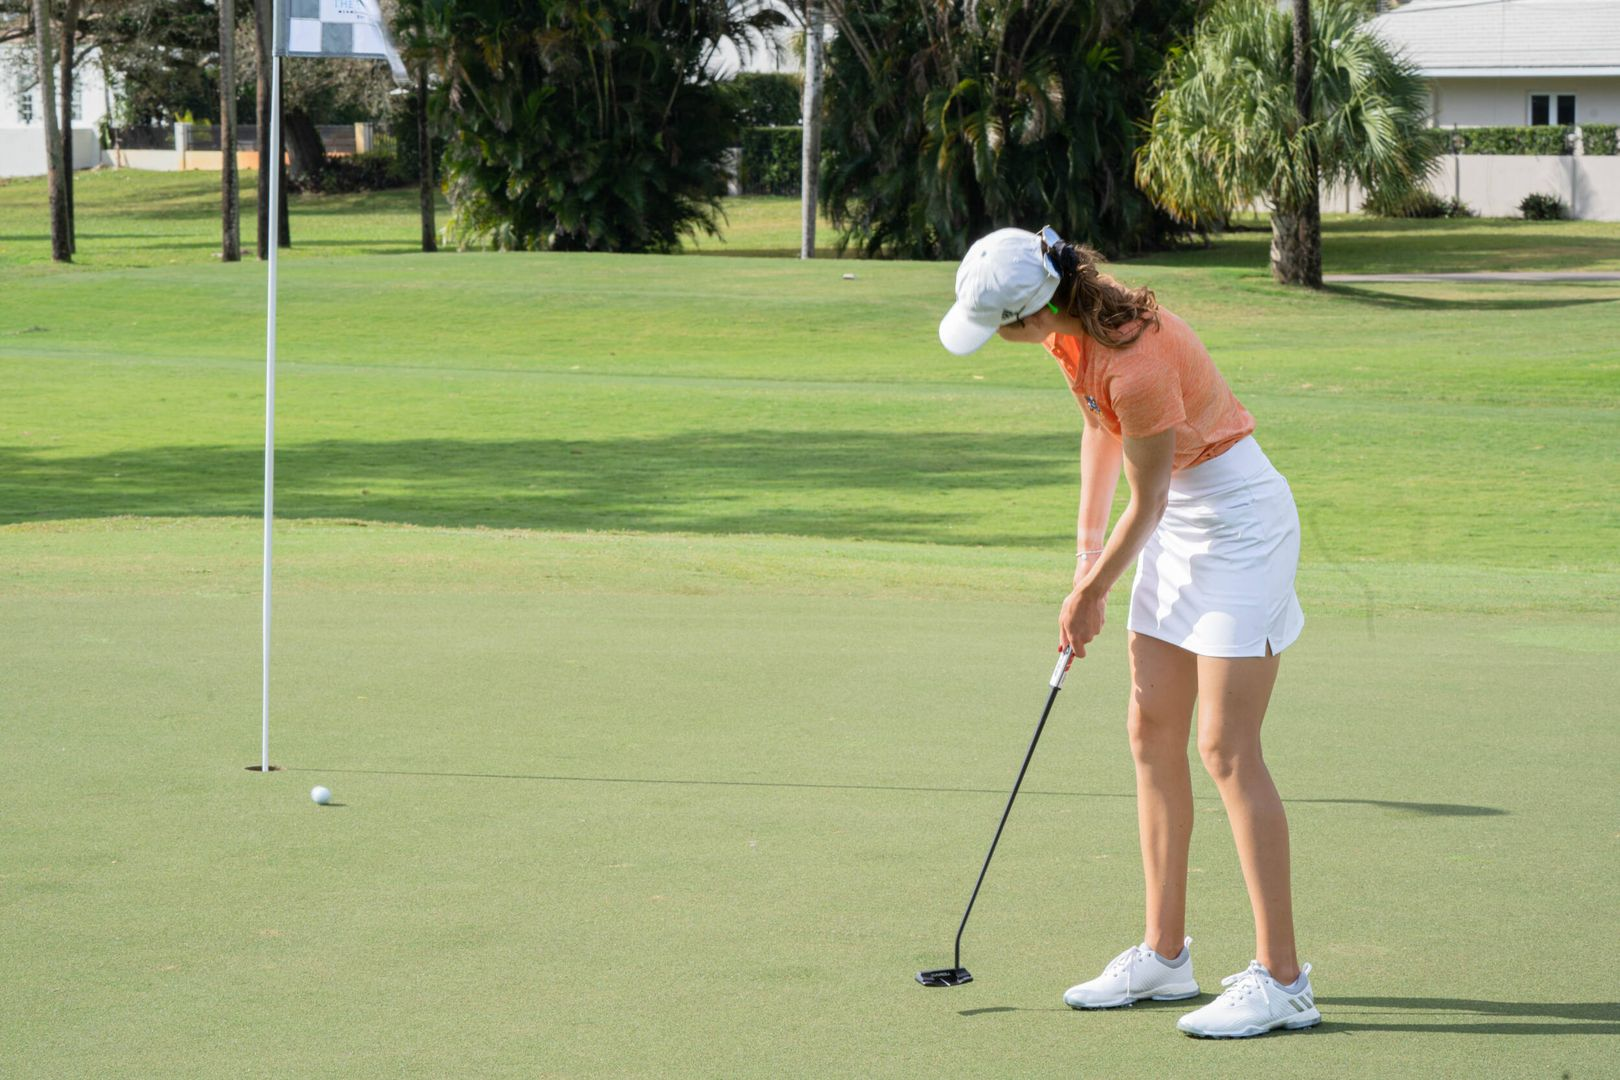 Golf Sits in Third at the Briar's Creek Invitational